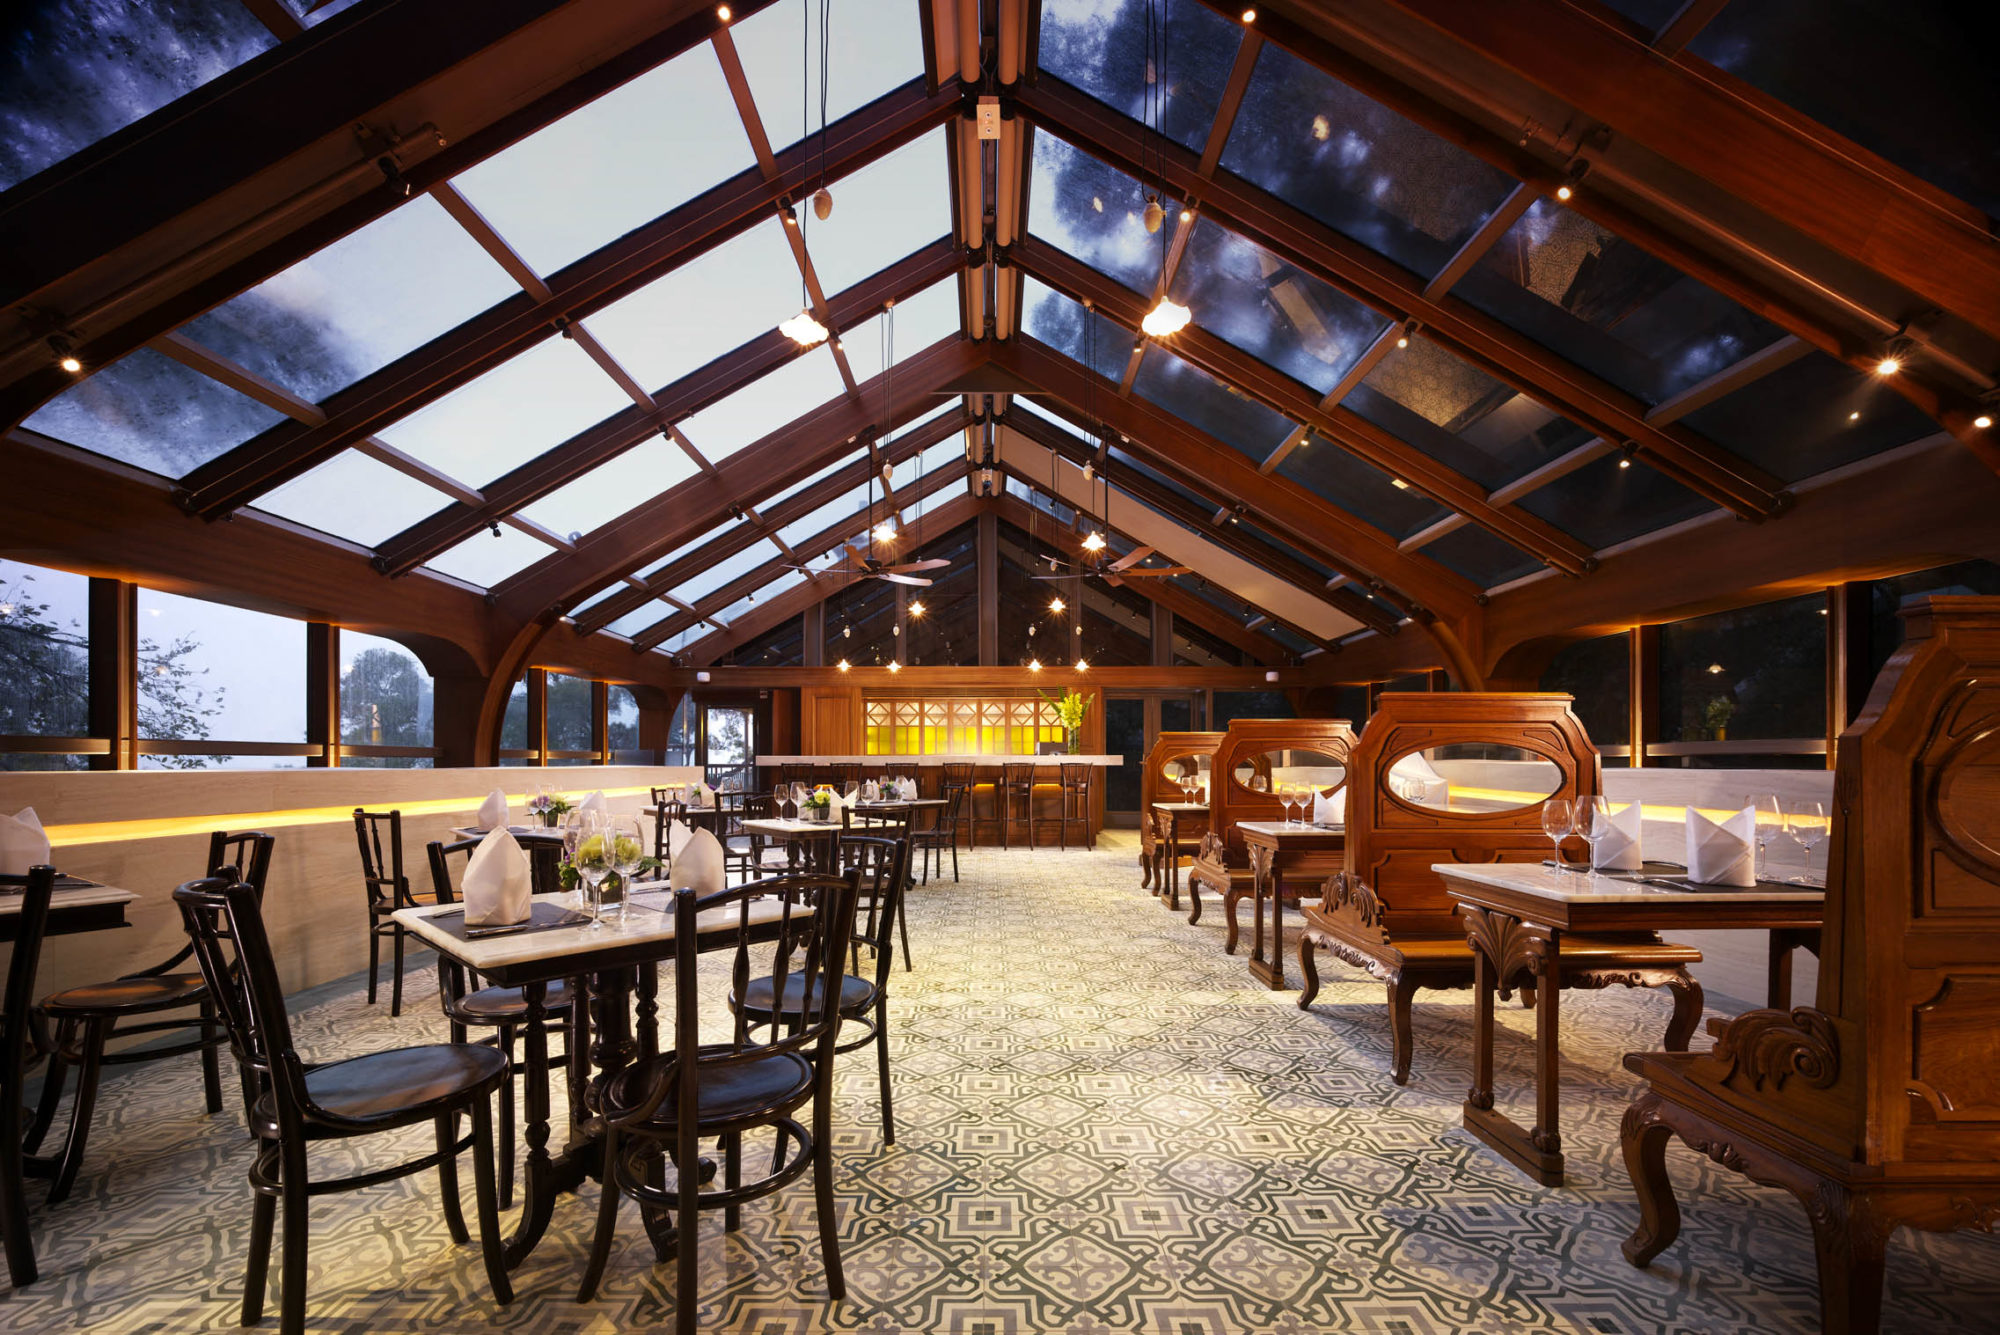 Tai O Heritage Hotel, a chic modern makeover of a heritage building in Hong Kong.